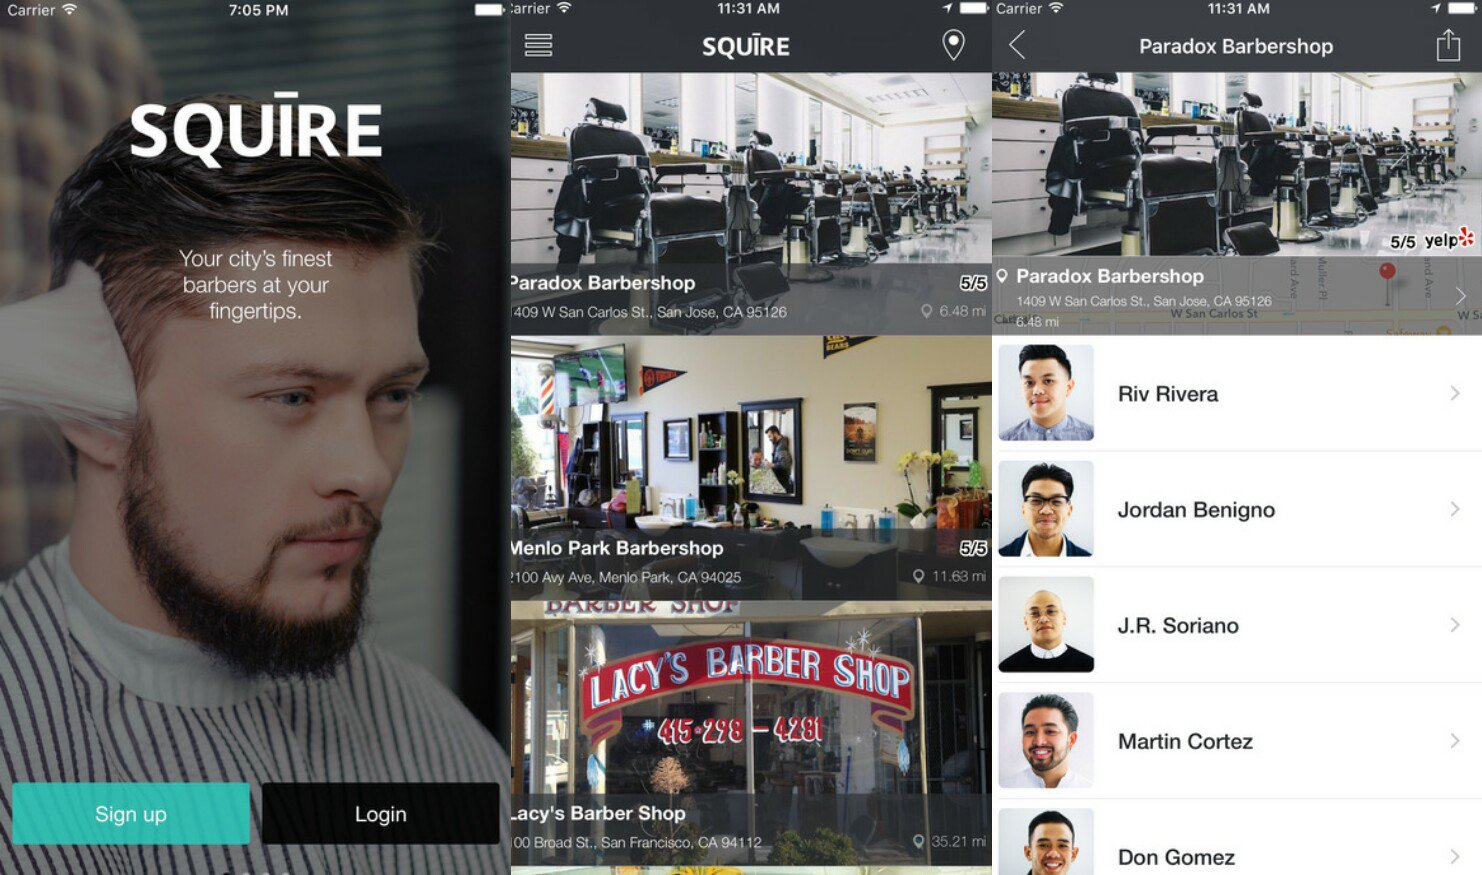 Mobile App Allows Users To Book A Barber Shop Appointment